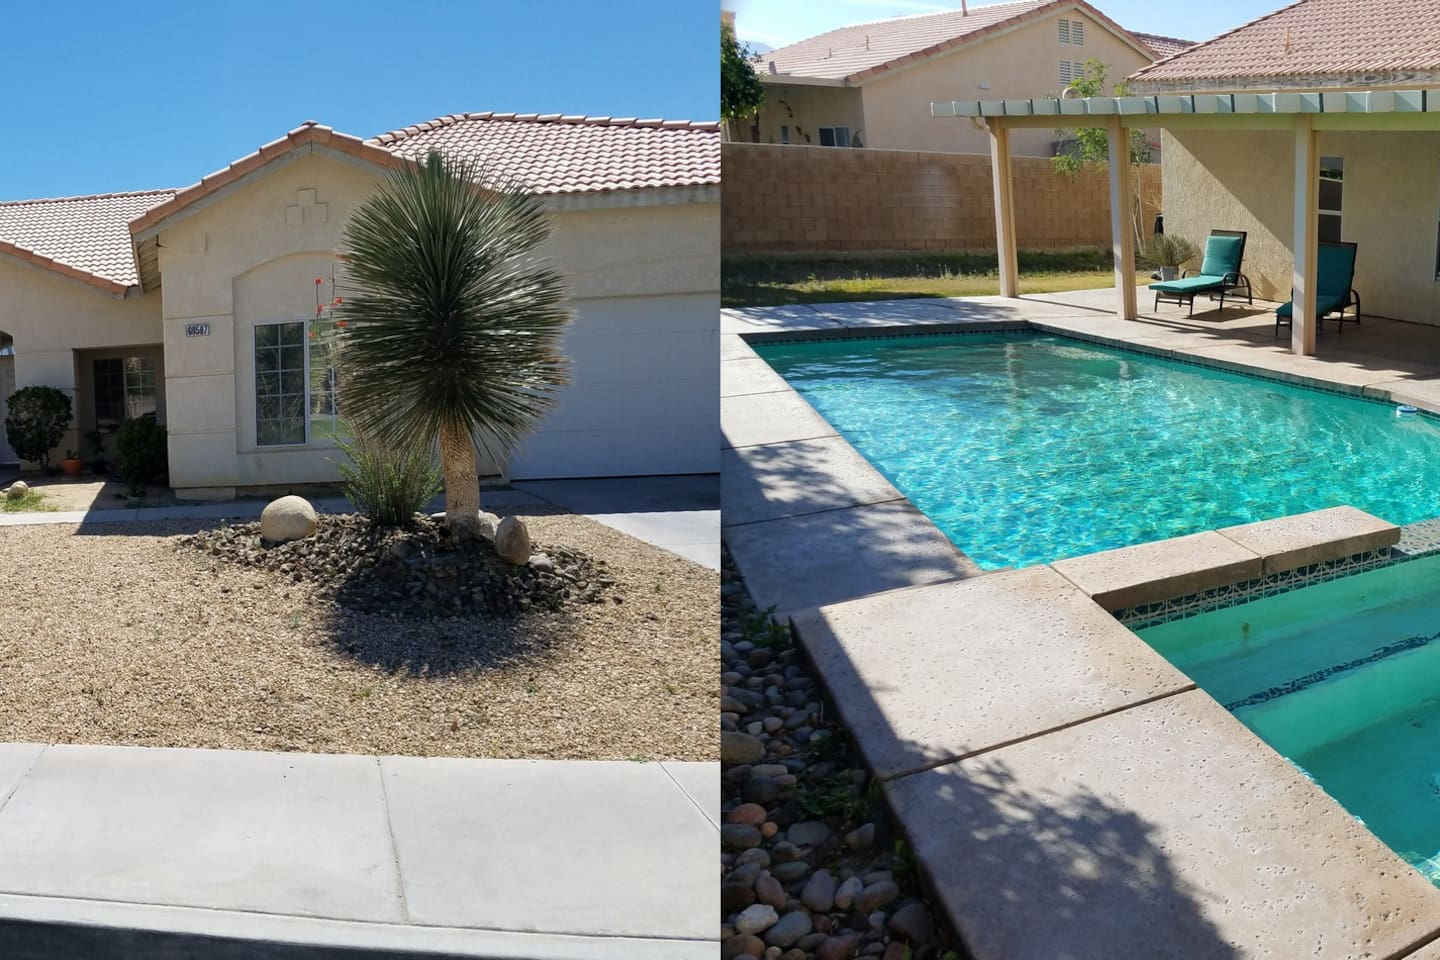 Sunny and spacious entire house with pool+jacuzzi - Houses for Rent ...